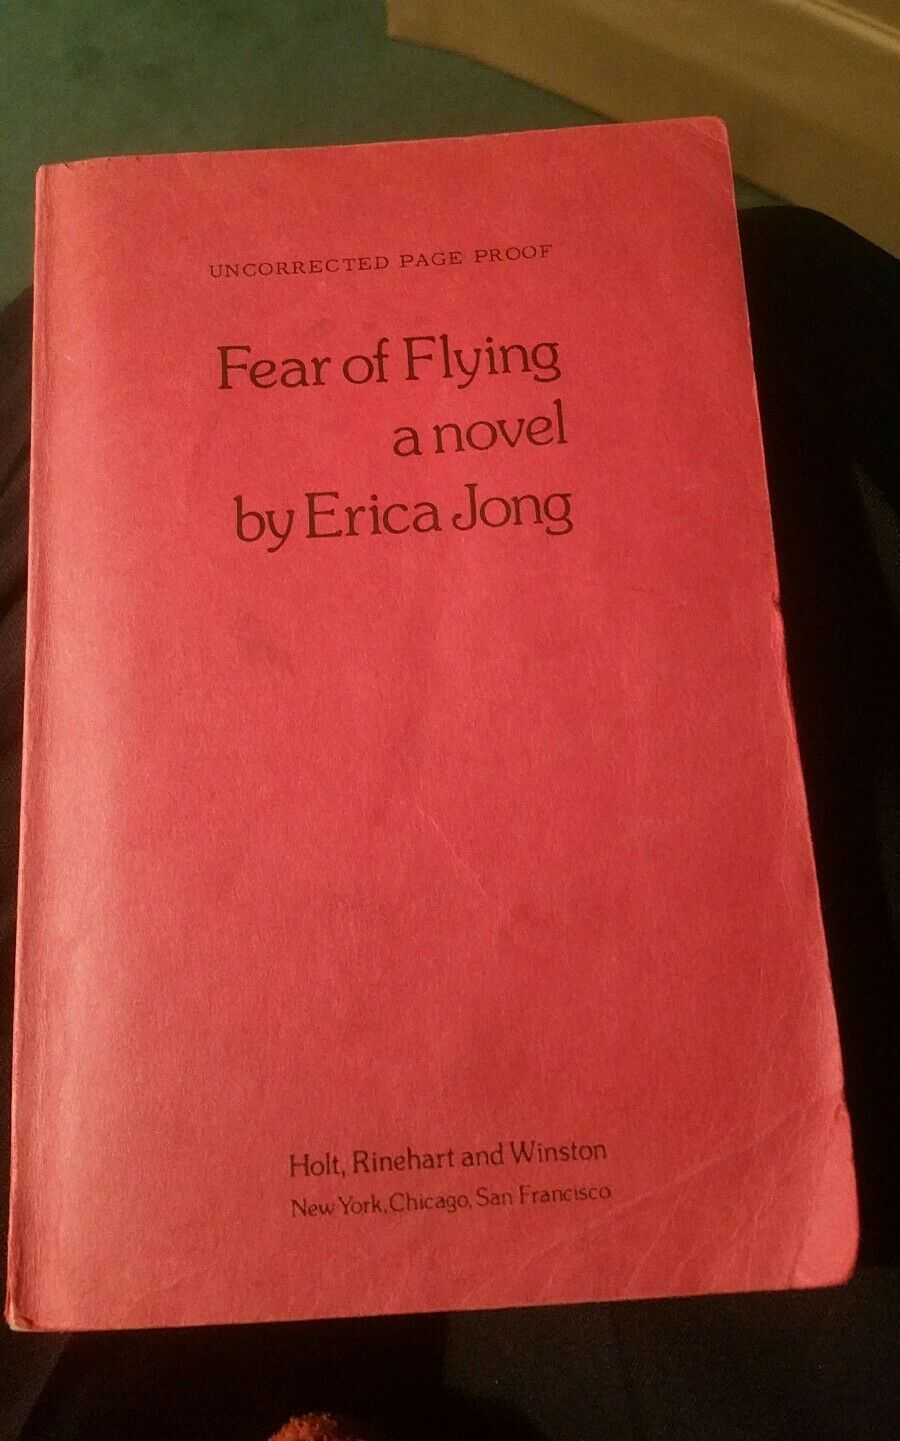 FEAR OF FLYING by Erica Jong, First edition,  uncorrected page proof 1